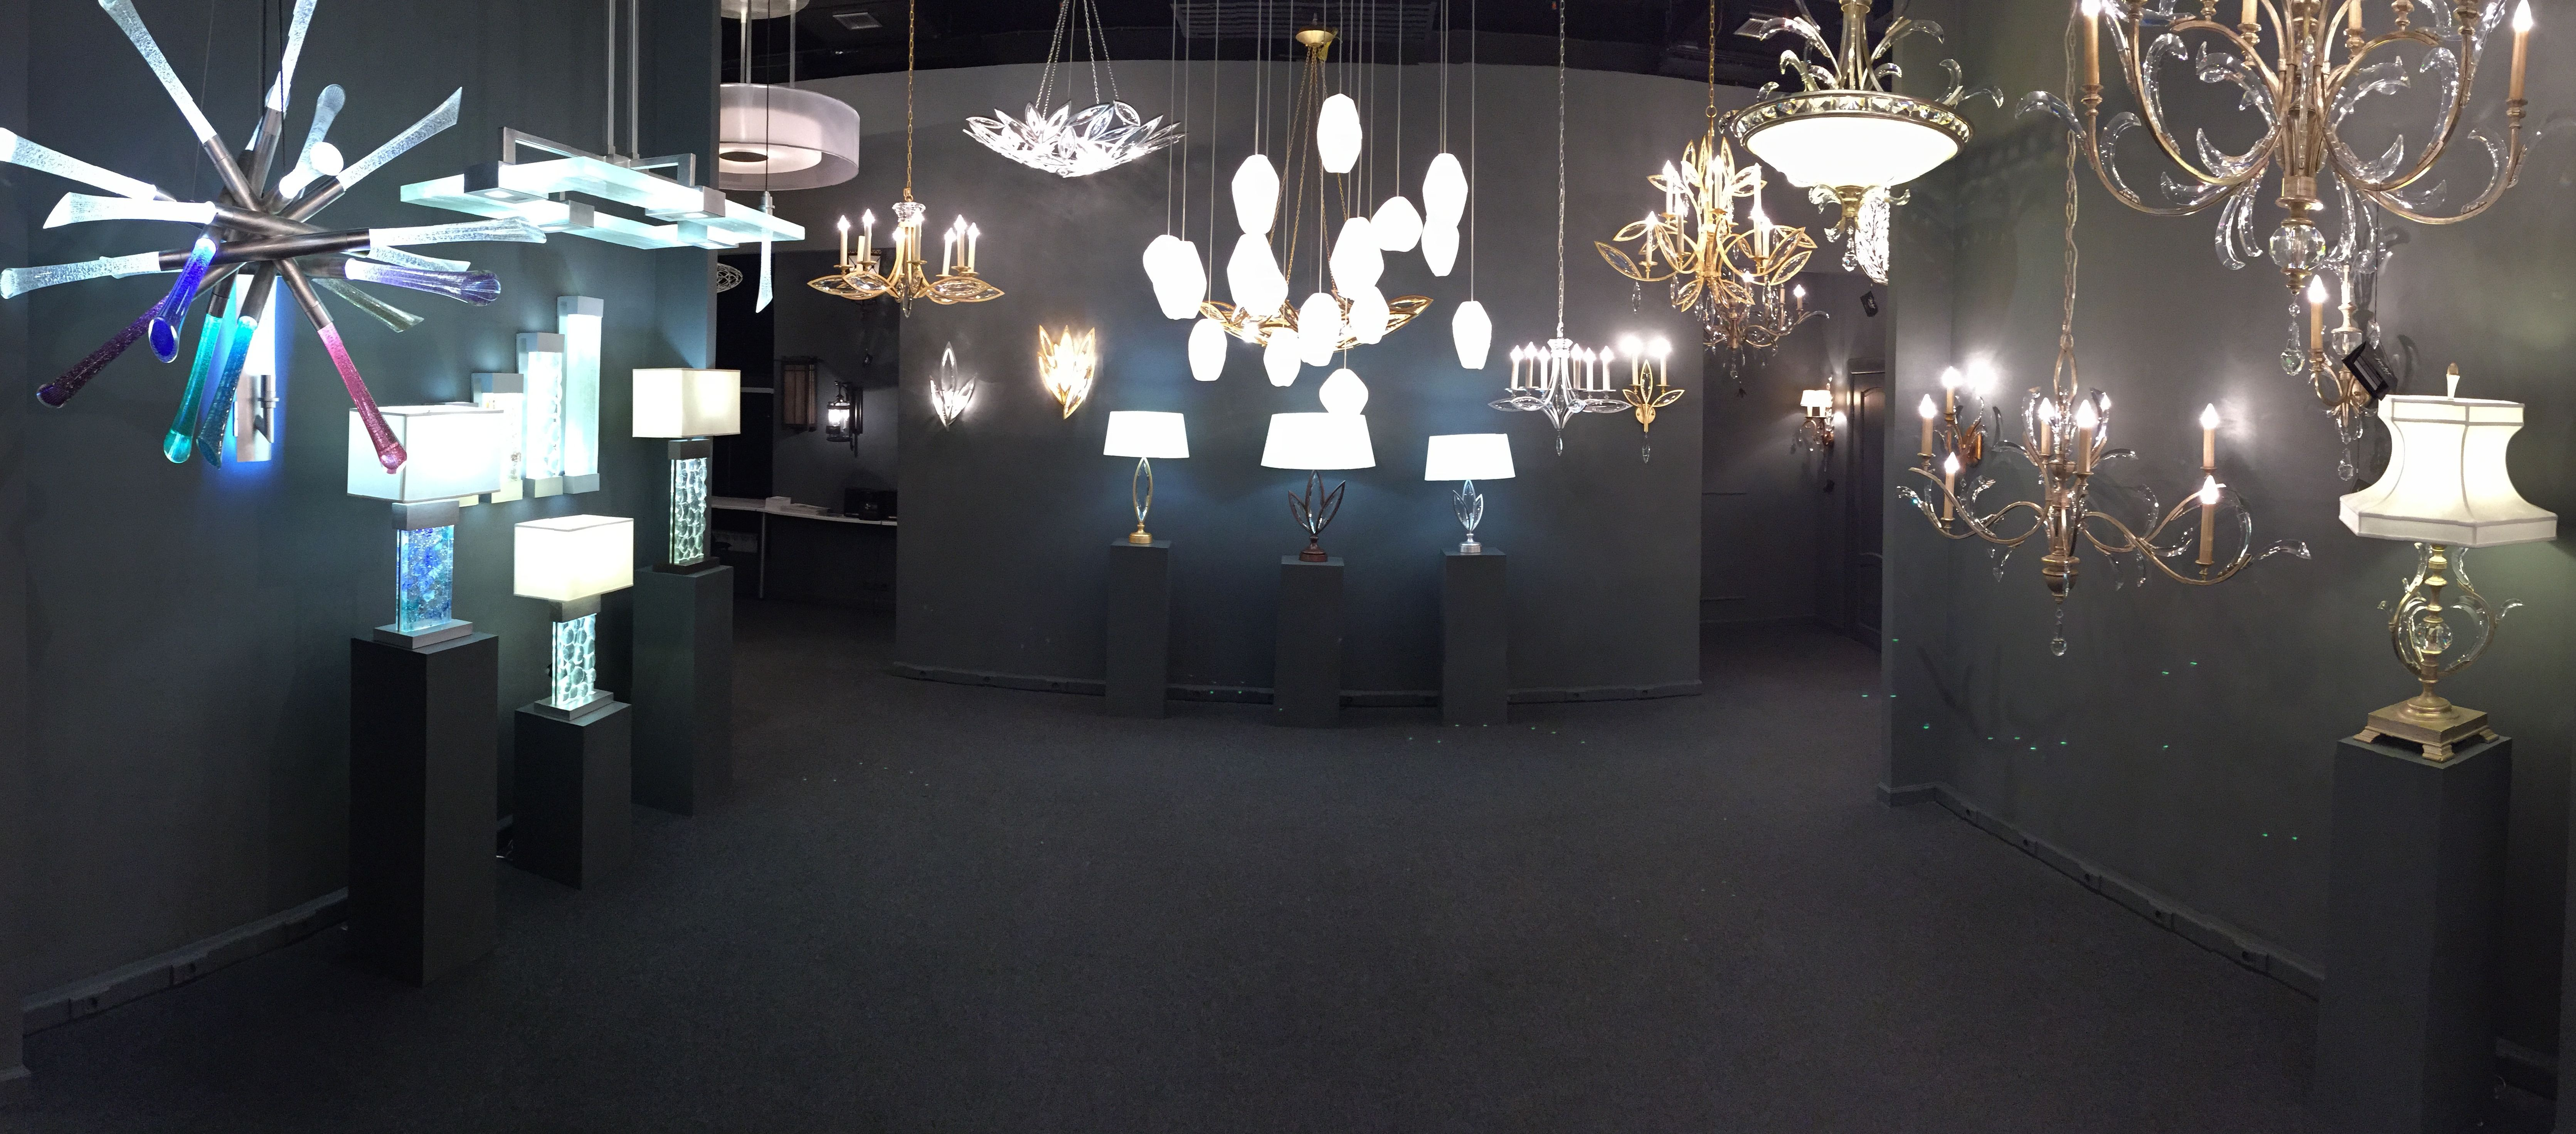 How beautiful does this showroom look fineartlamps miami lights how beautiful does this showroom look fineartlamps miami showroom luxury arubaitofo Image collections